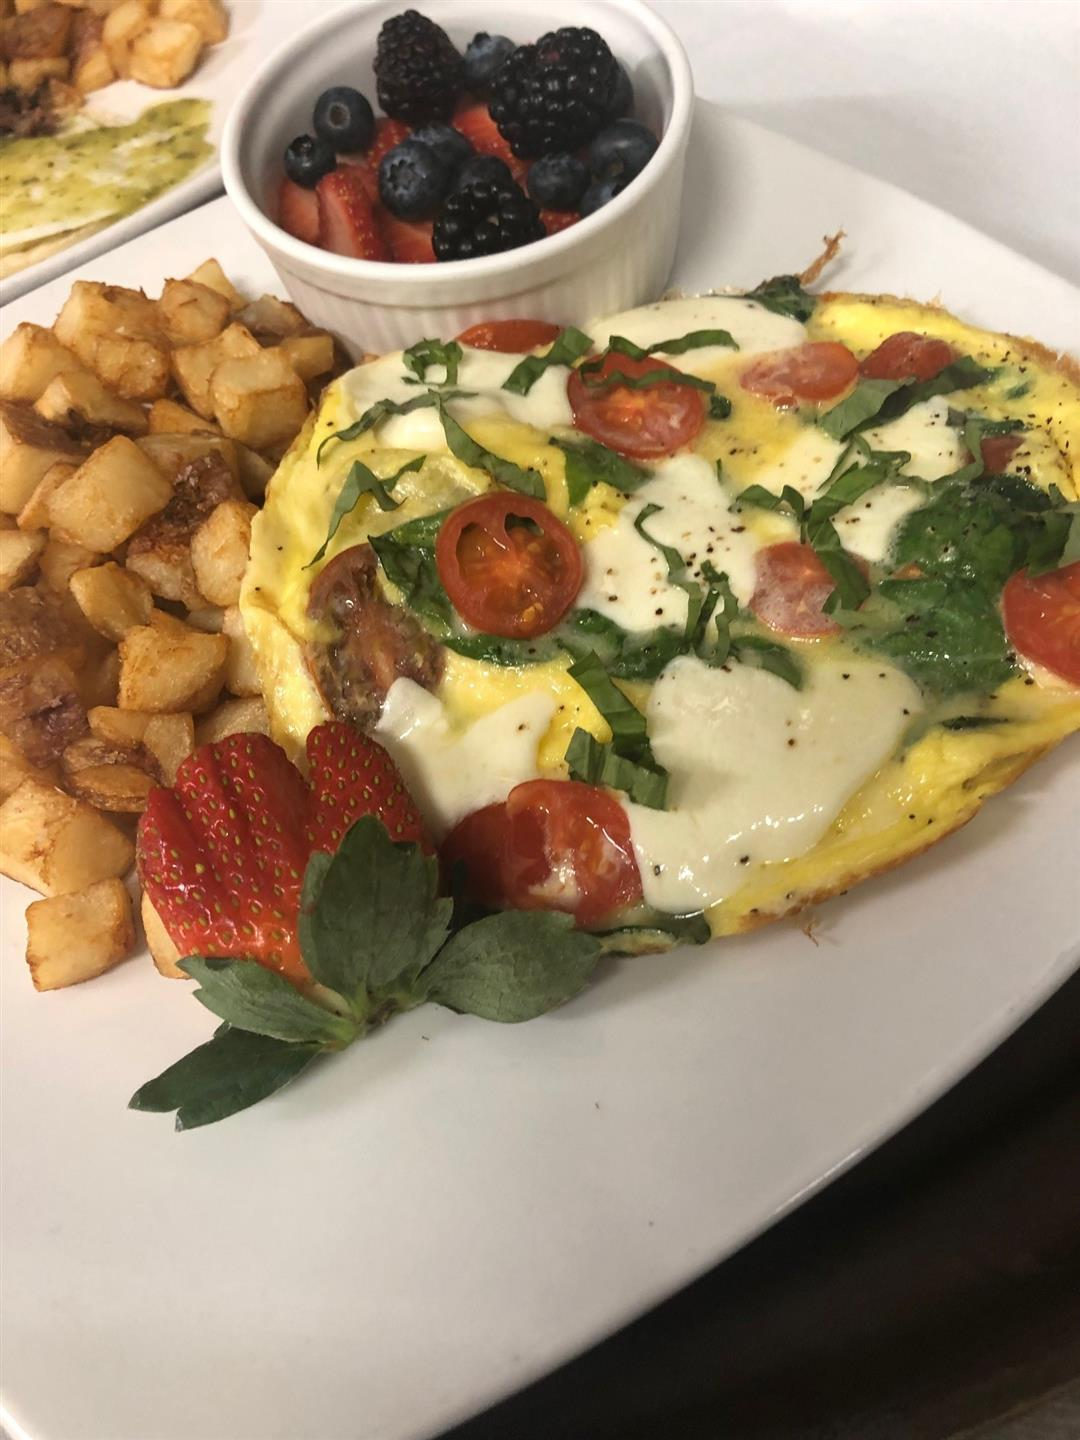 Omelete with homefries and a side of berries